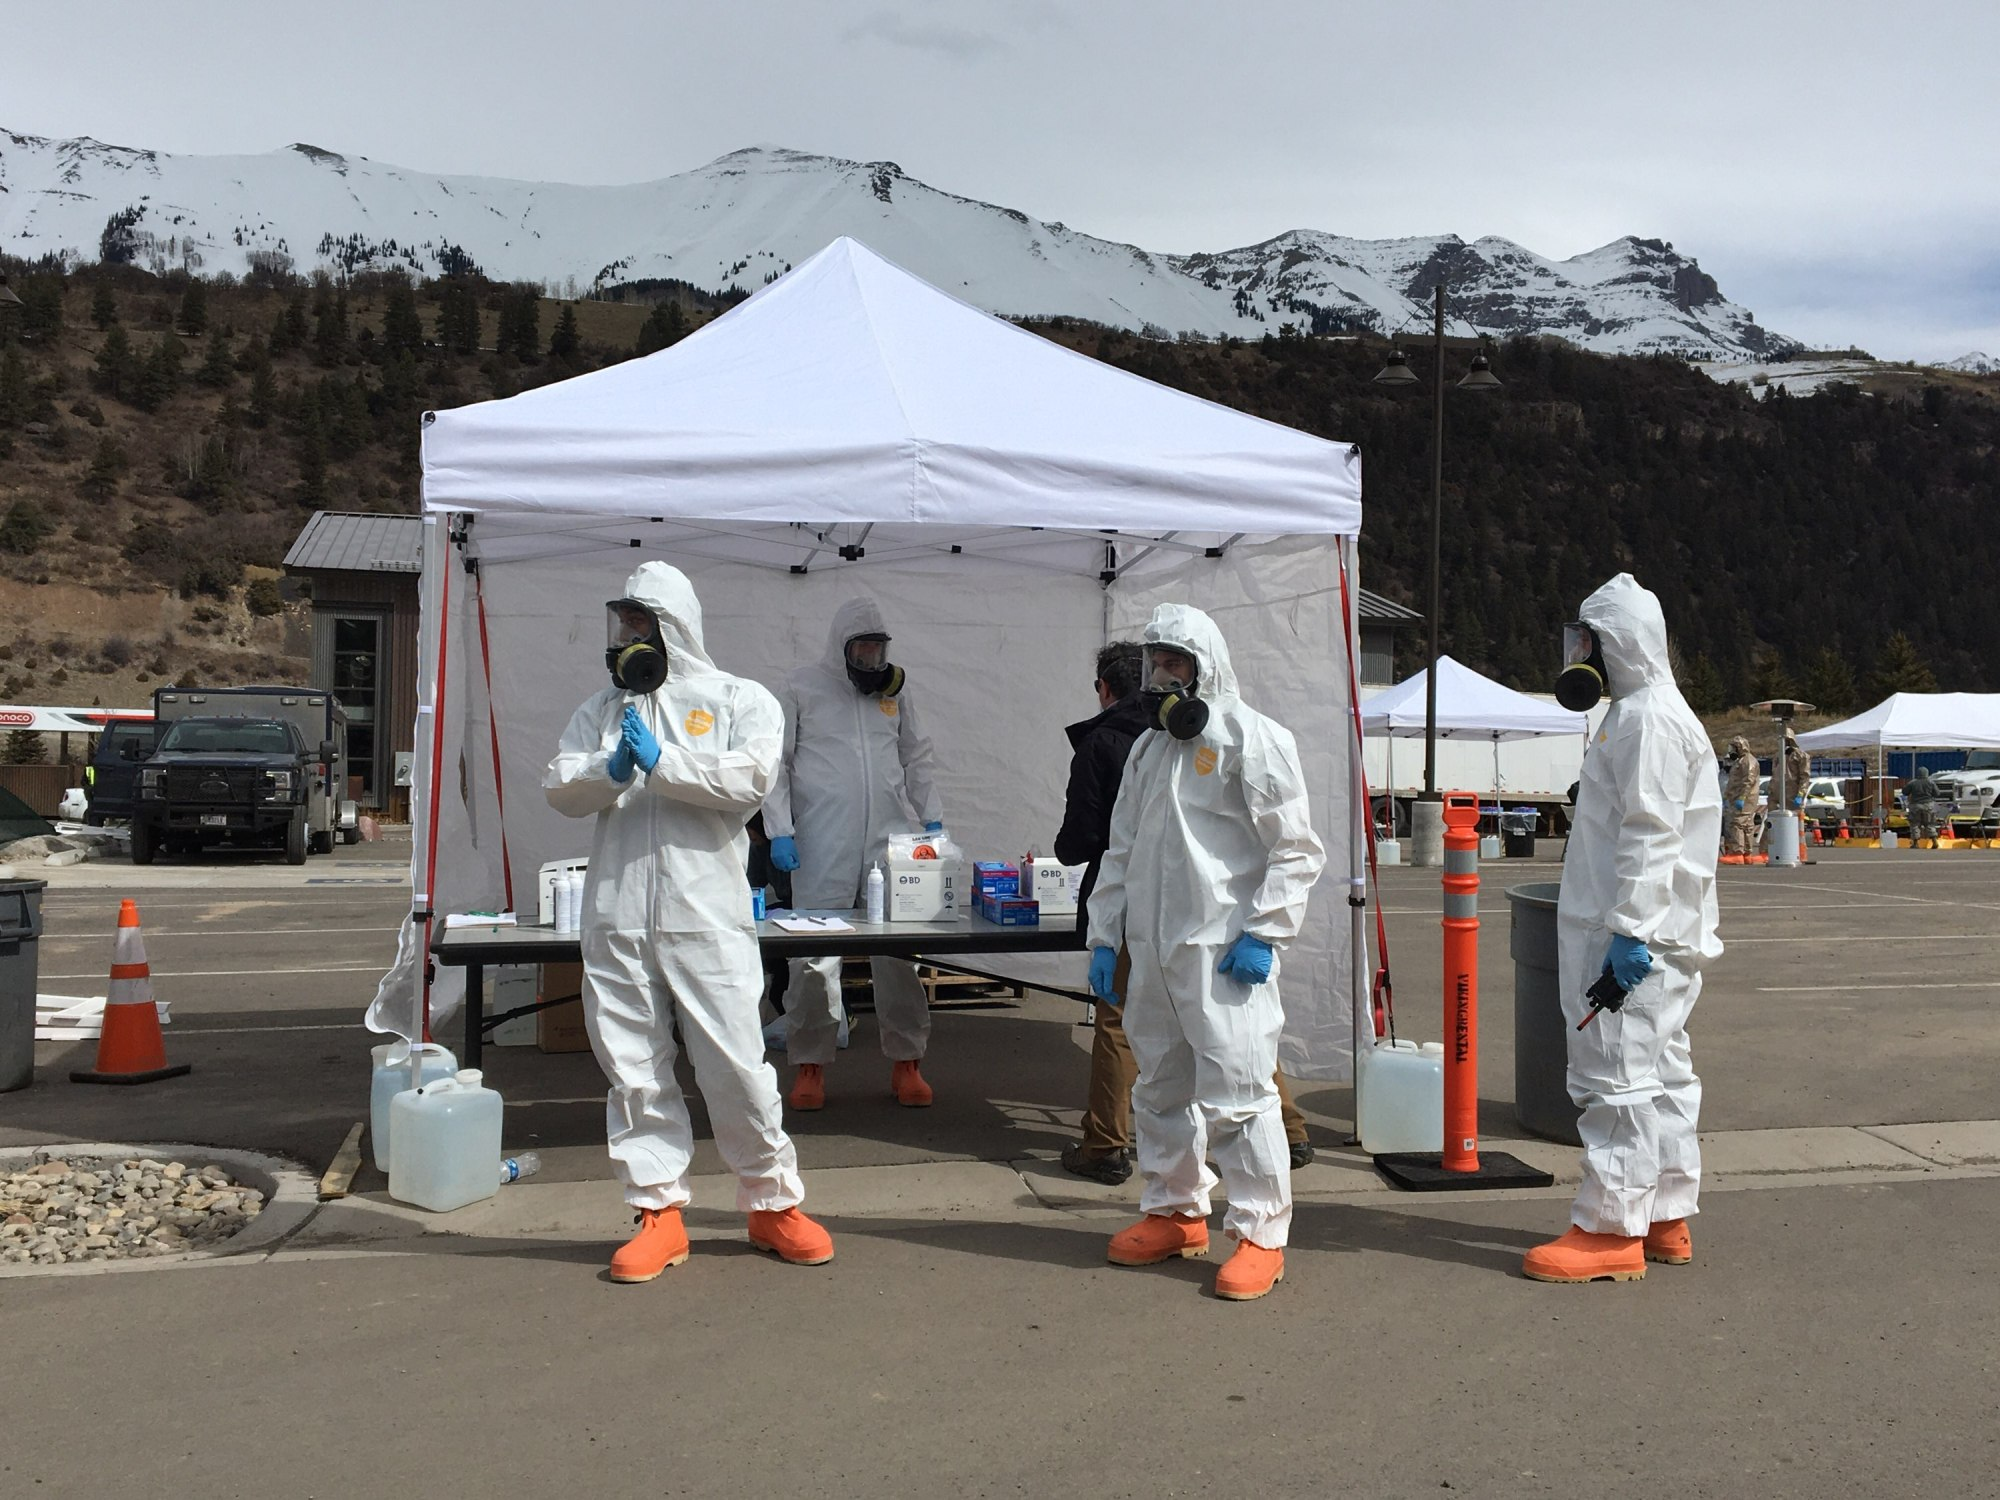 Members of the Colorado National Guard assist San Miguel County and the Colorado Department of Public Health & Environment with a COVID-19 drive-up testing station in Telluride, Colorado, March 17, 2020.